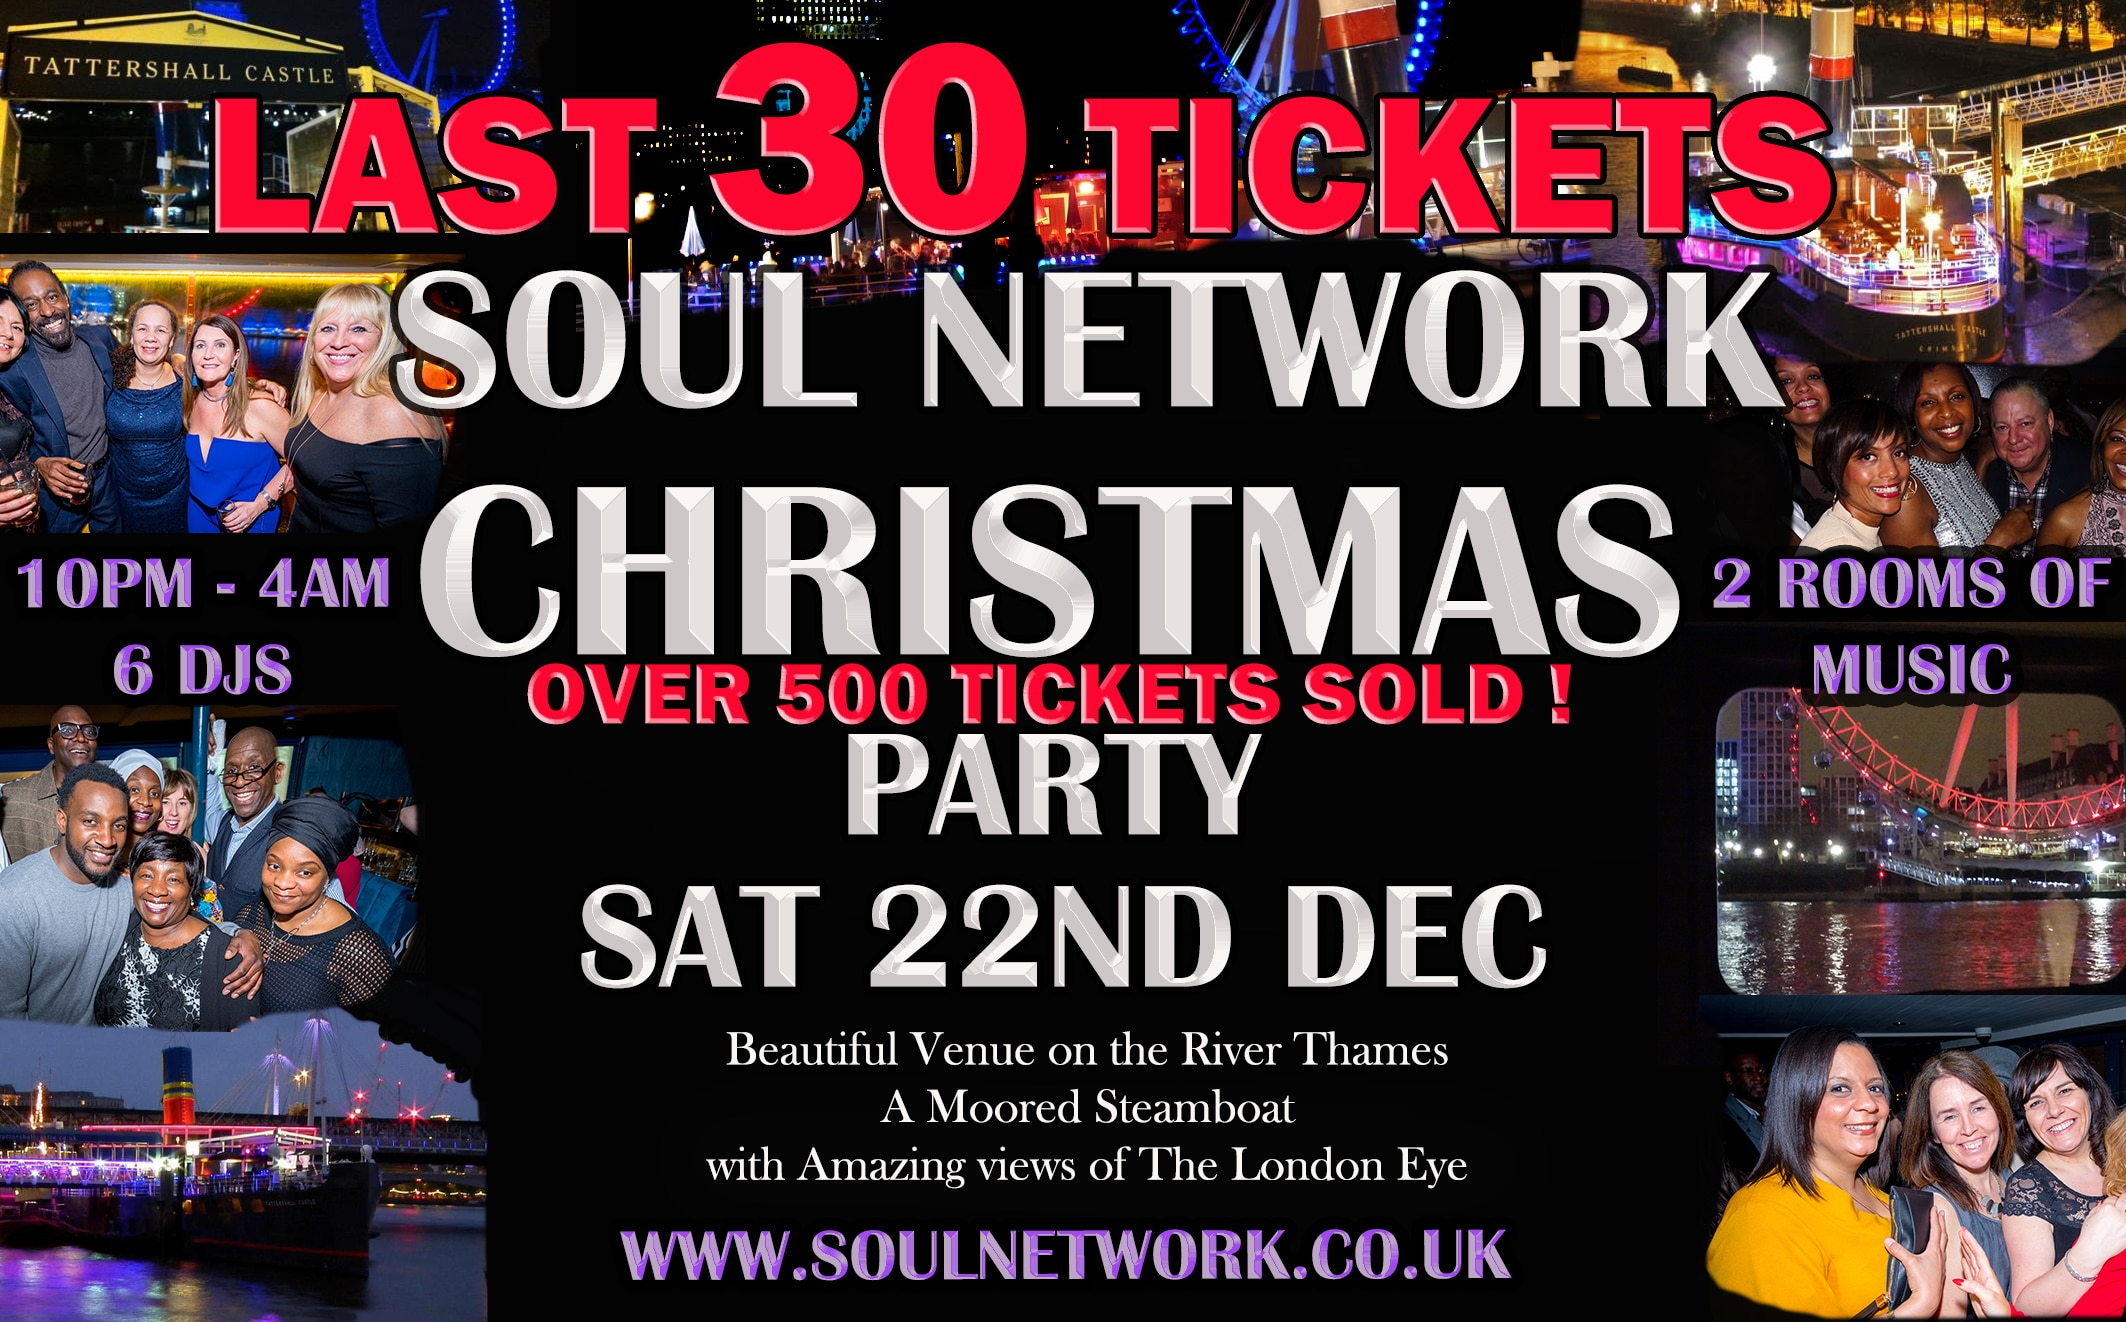 last 30 tickest now sold Christmas Party Flyer Tattershall